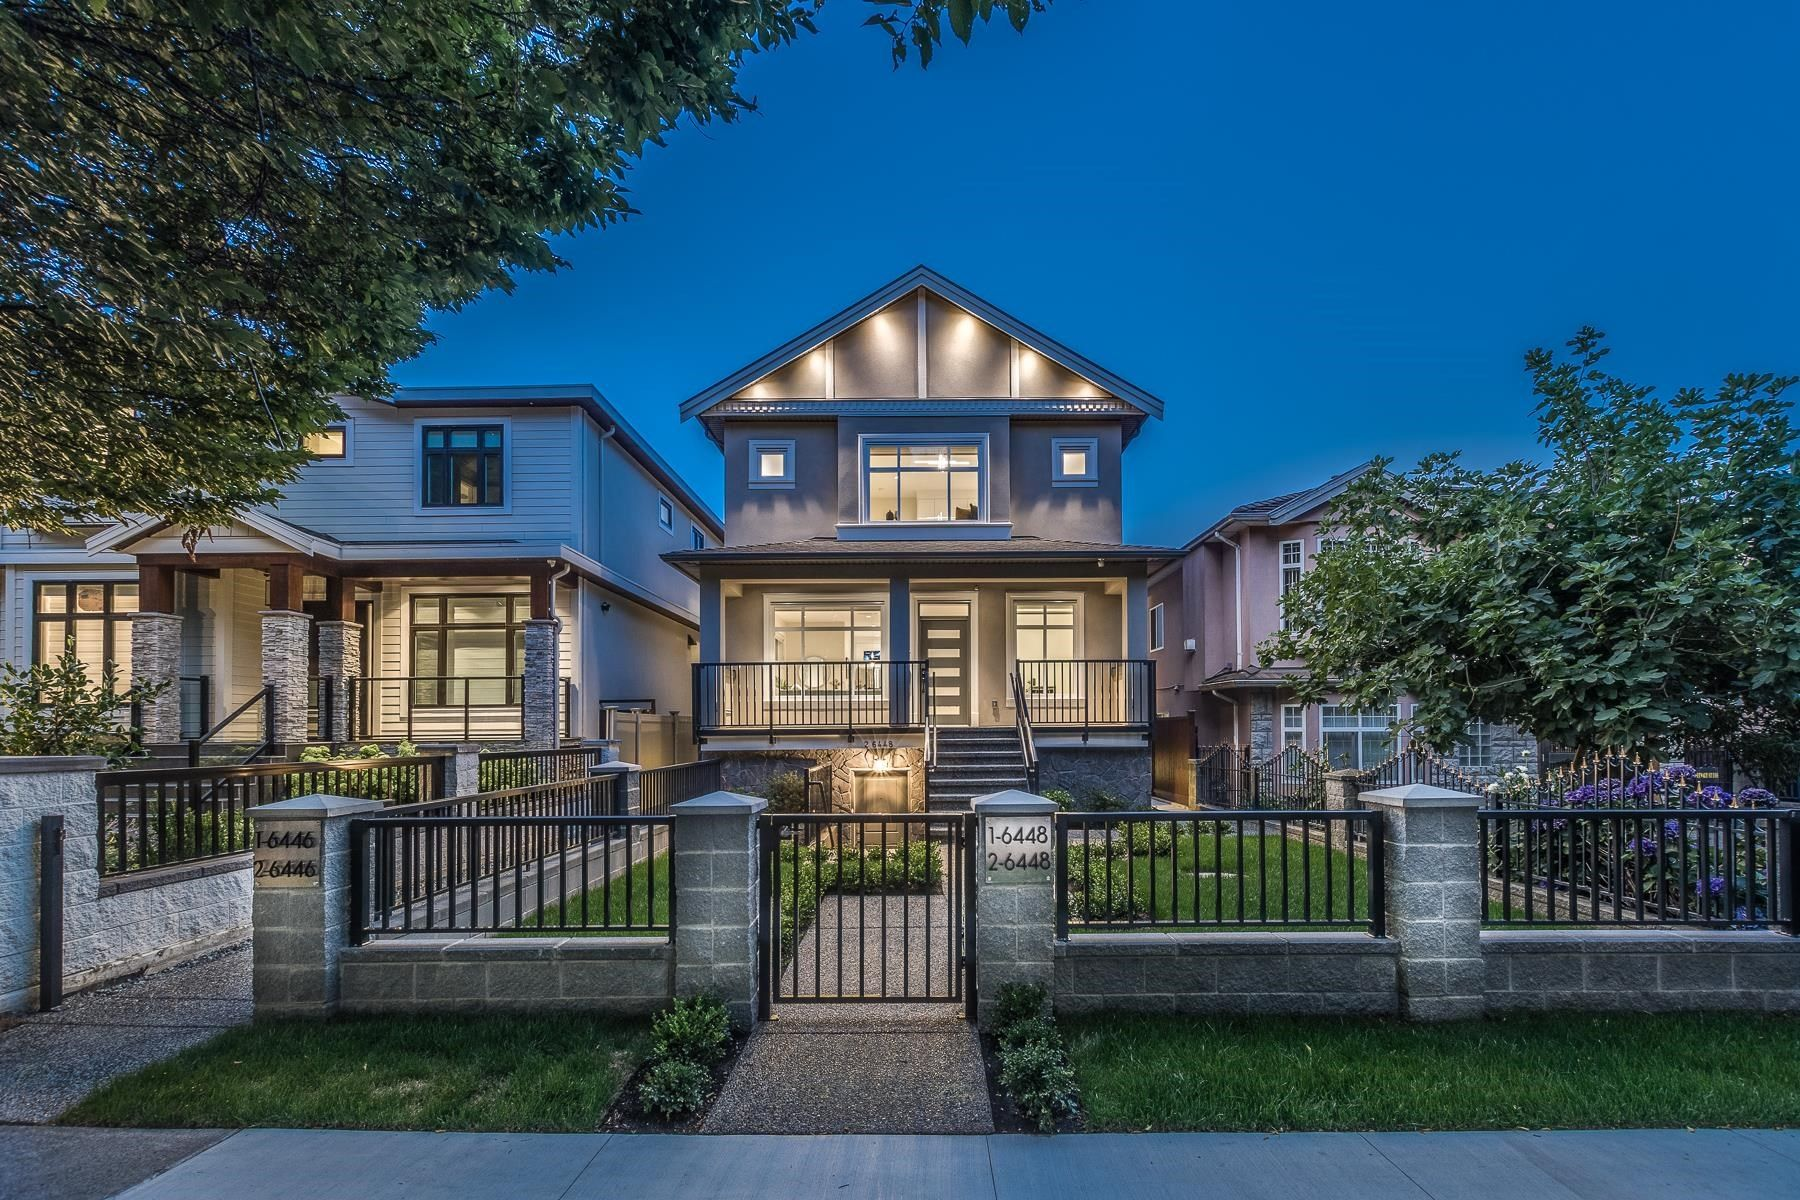 Main Photo: 6448 ARGYLE Street in Vancouver: Knight 1/2 Duplex for sale (Vancouver East)  : MLS®# R2609004